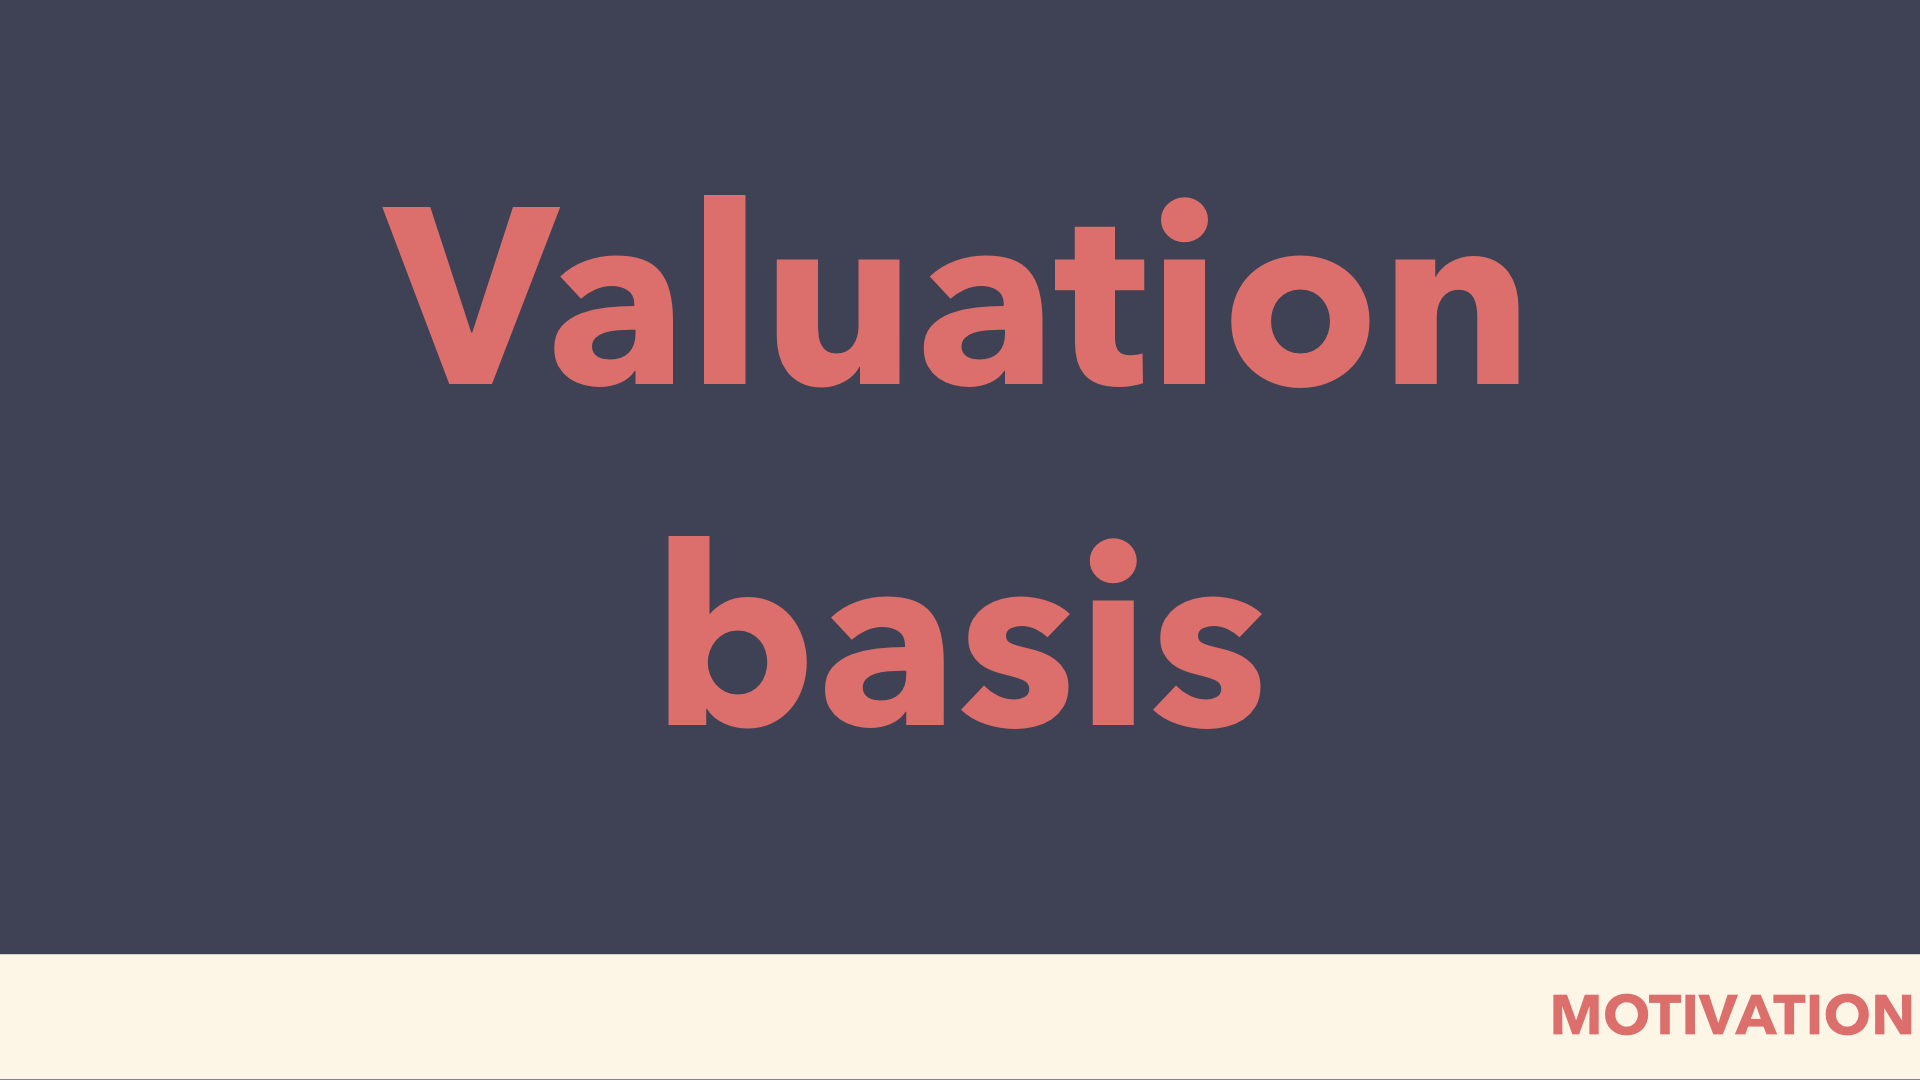 valuation basis